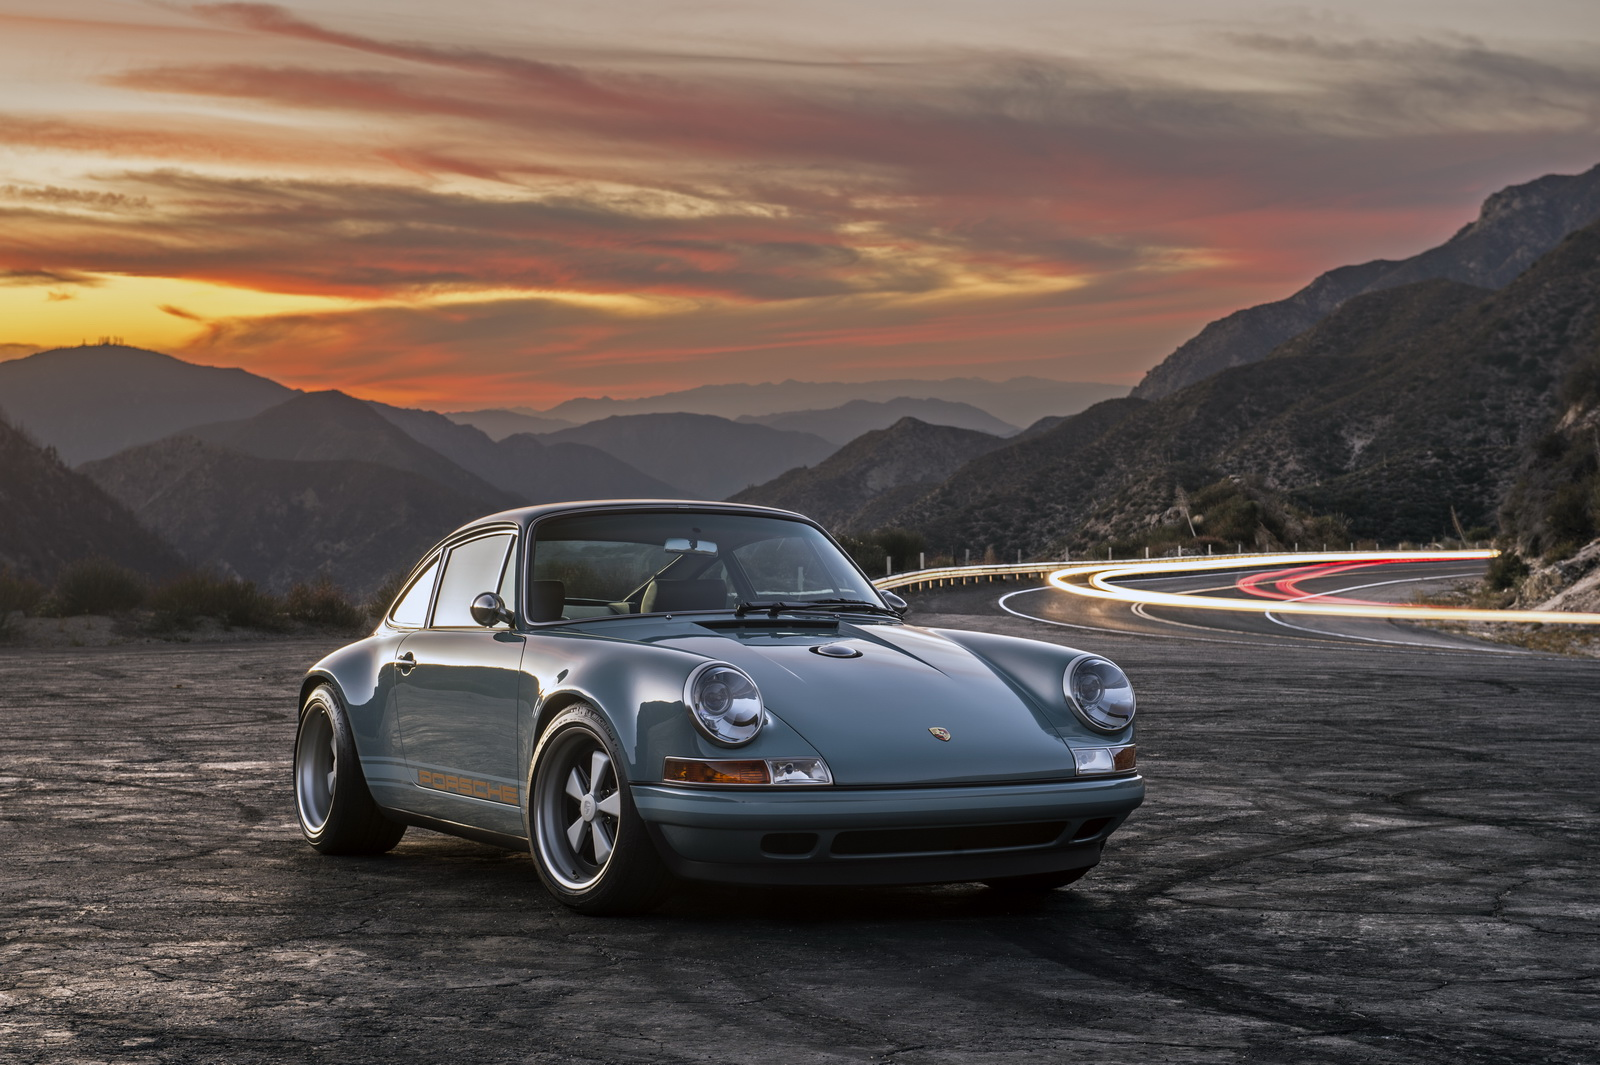 Free Desktop Wallpaper Classic Cars Feel Free To Drool Over The Latest Singer 911s Carscoops